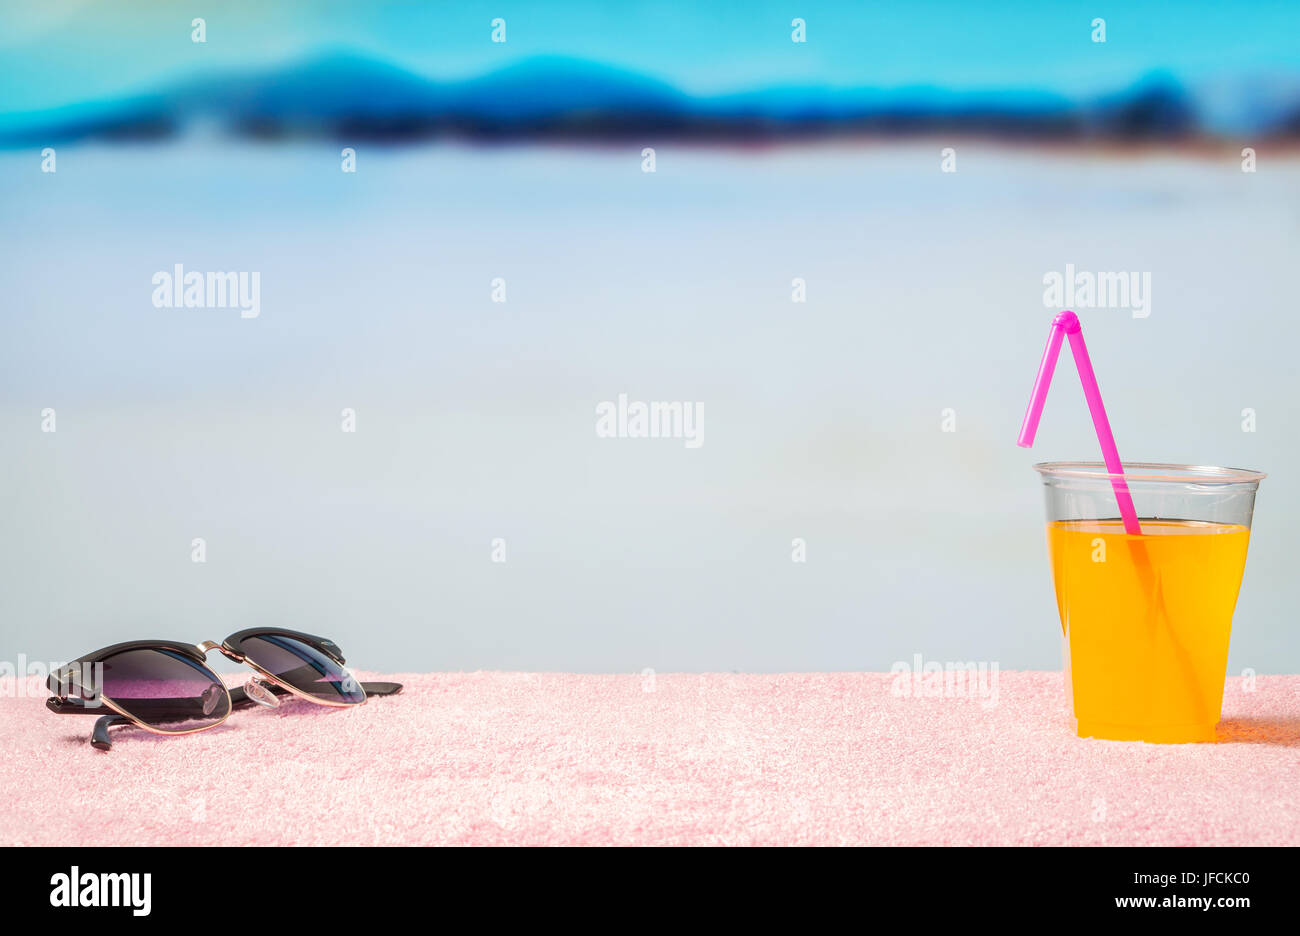 Paradise holiday background with yellow cocktail on sunglasses on beach. Perfect for summer sales and offer campaign - Stock Image